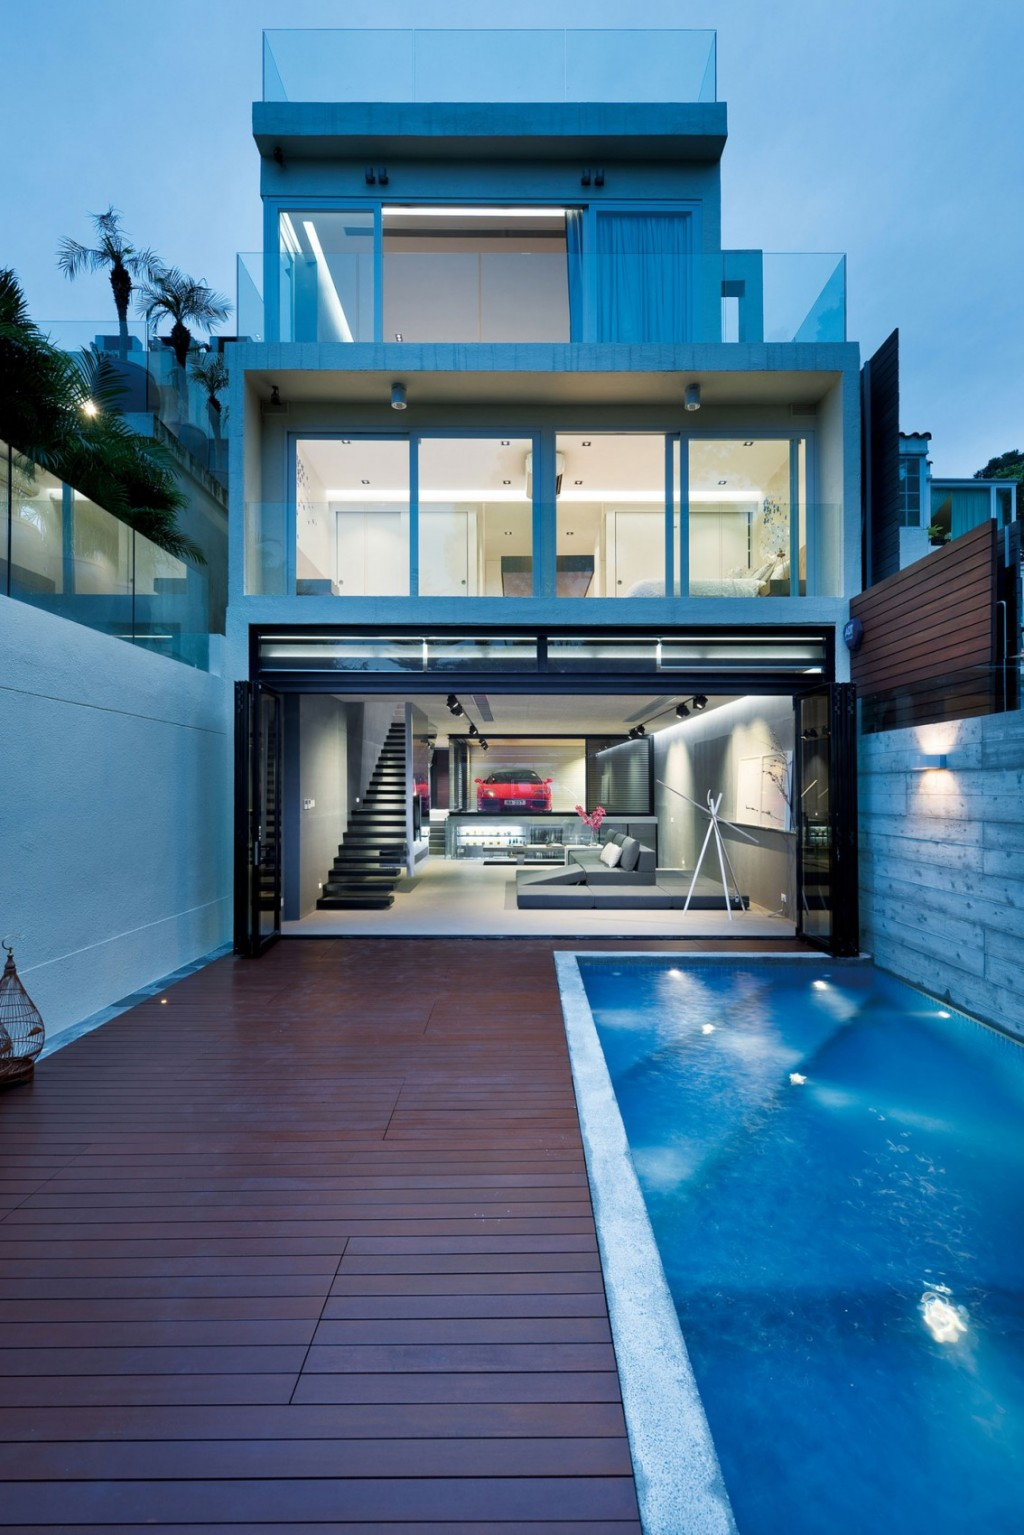 Split-Level Hong Kong Home Centered Around A Red Ferrari